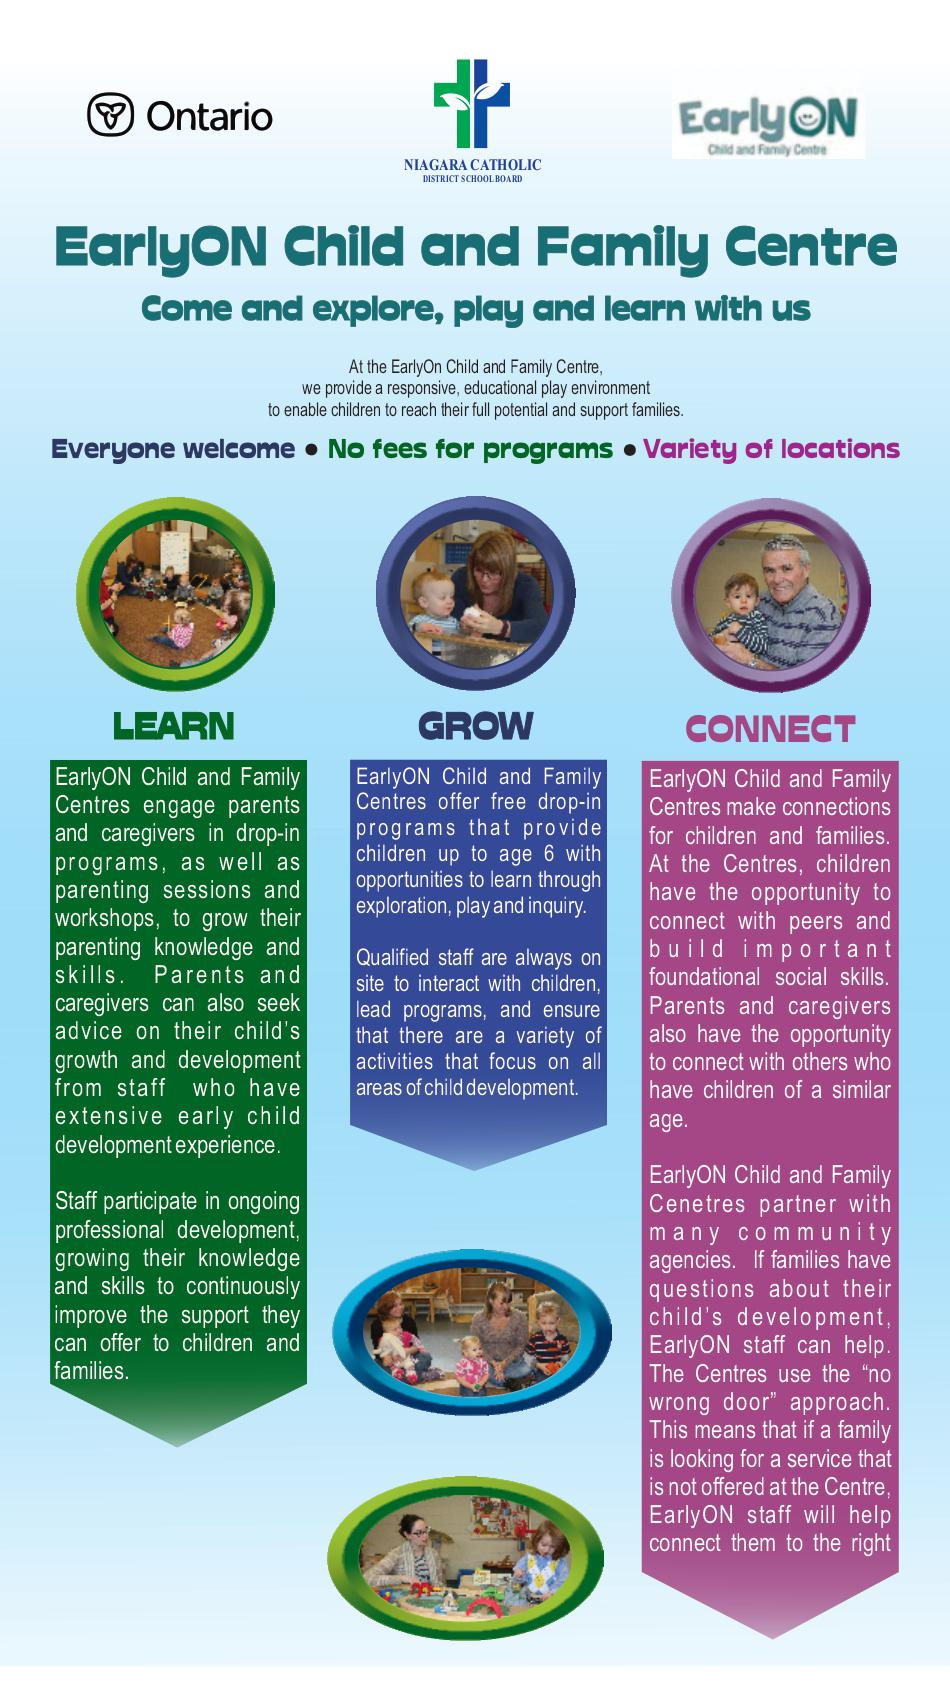 Learn Grow Connect with EarlyON